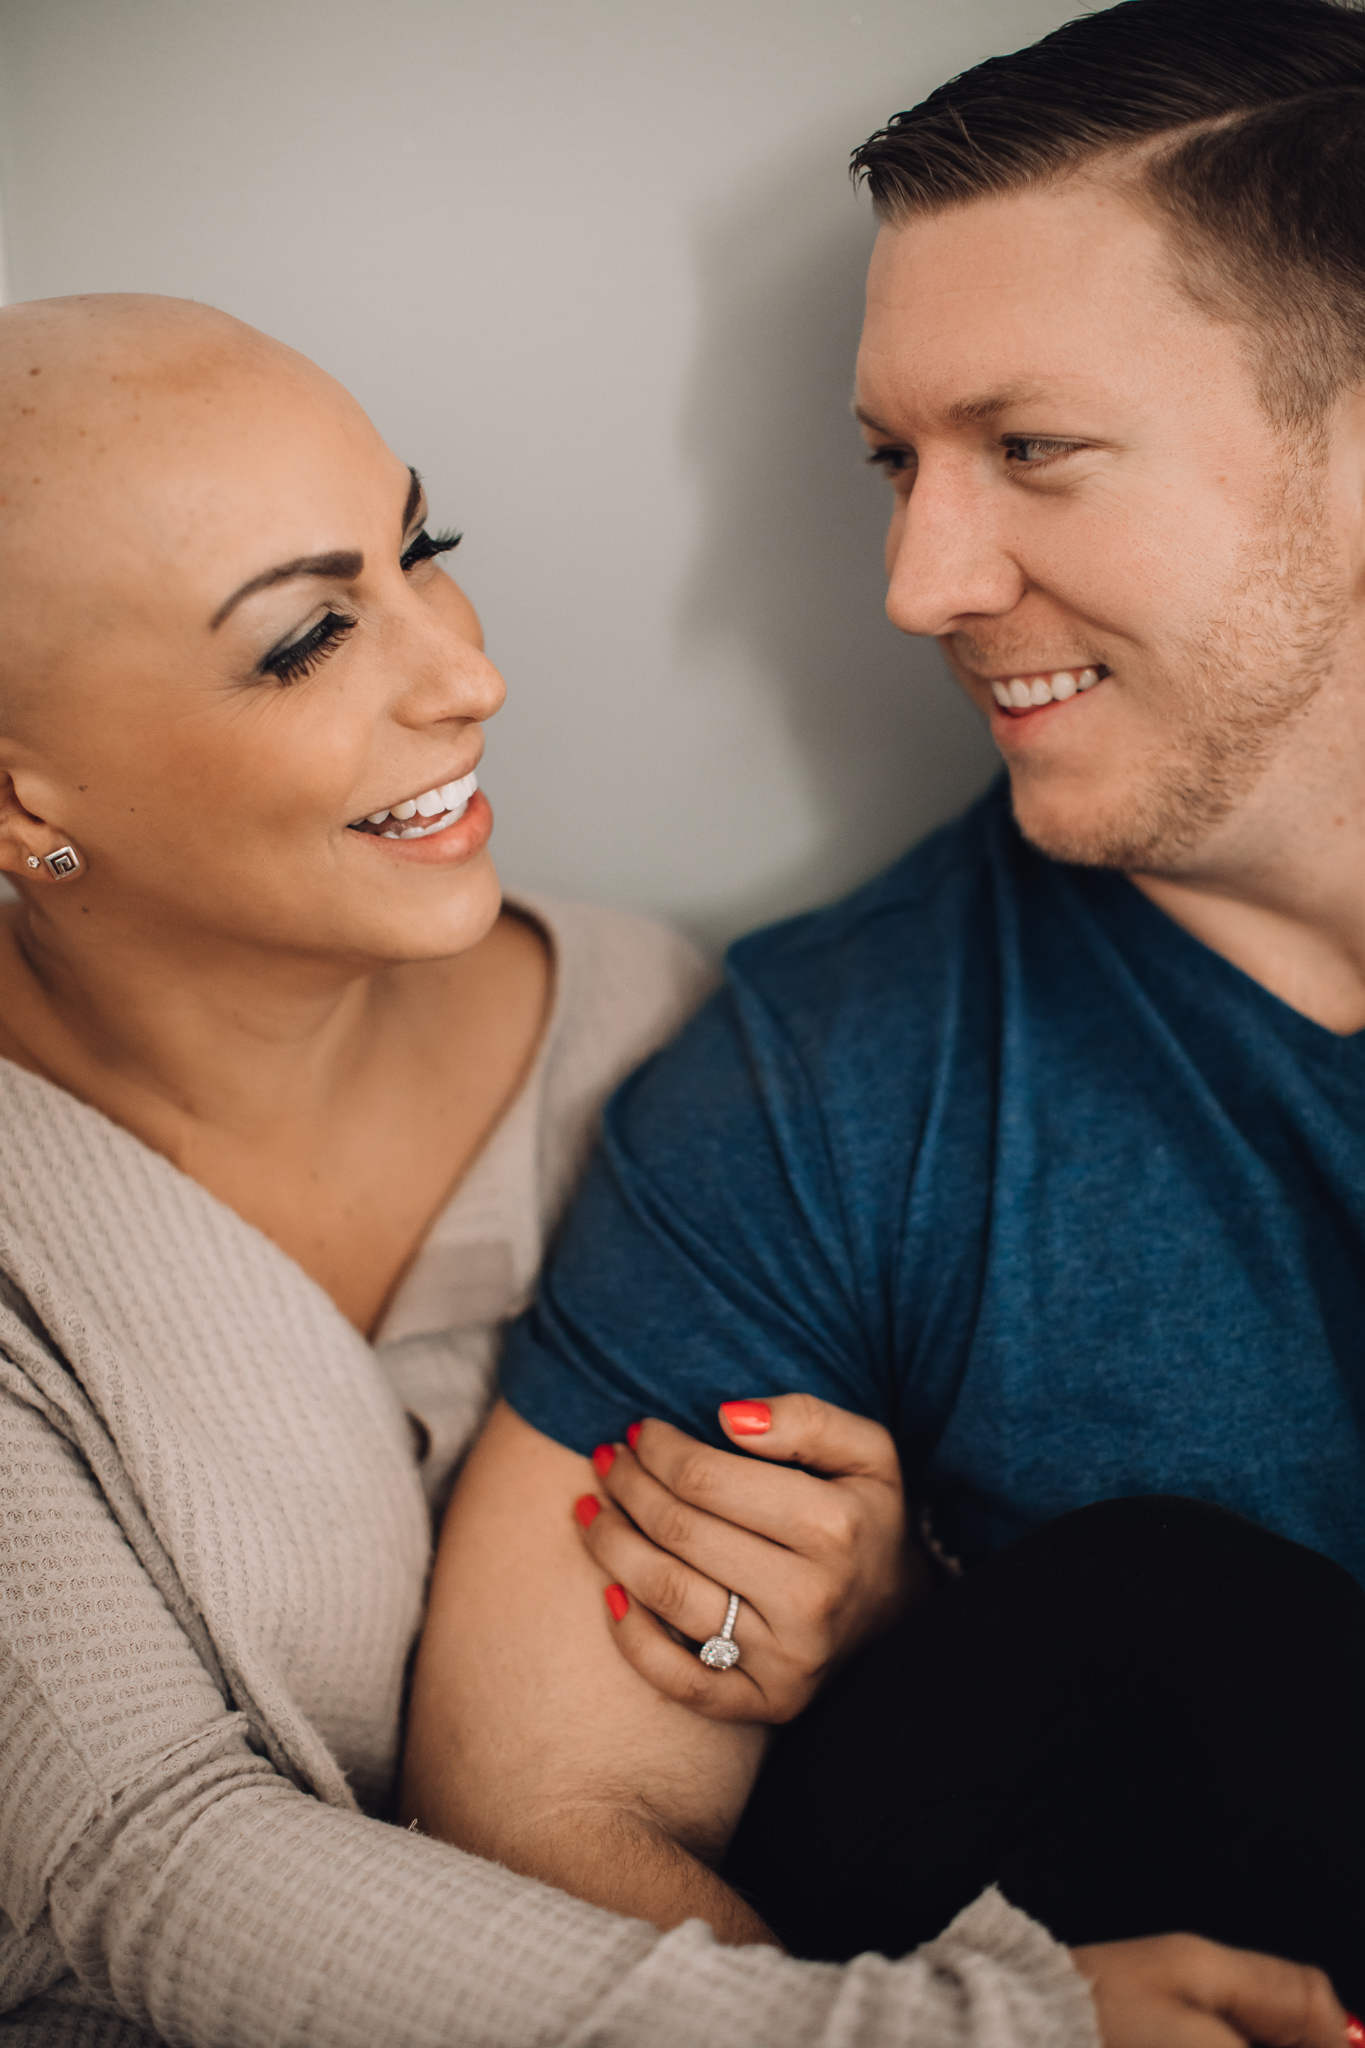 in-home-engagement-session-Nashville-tn-cozy-photoshoot